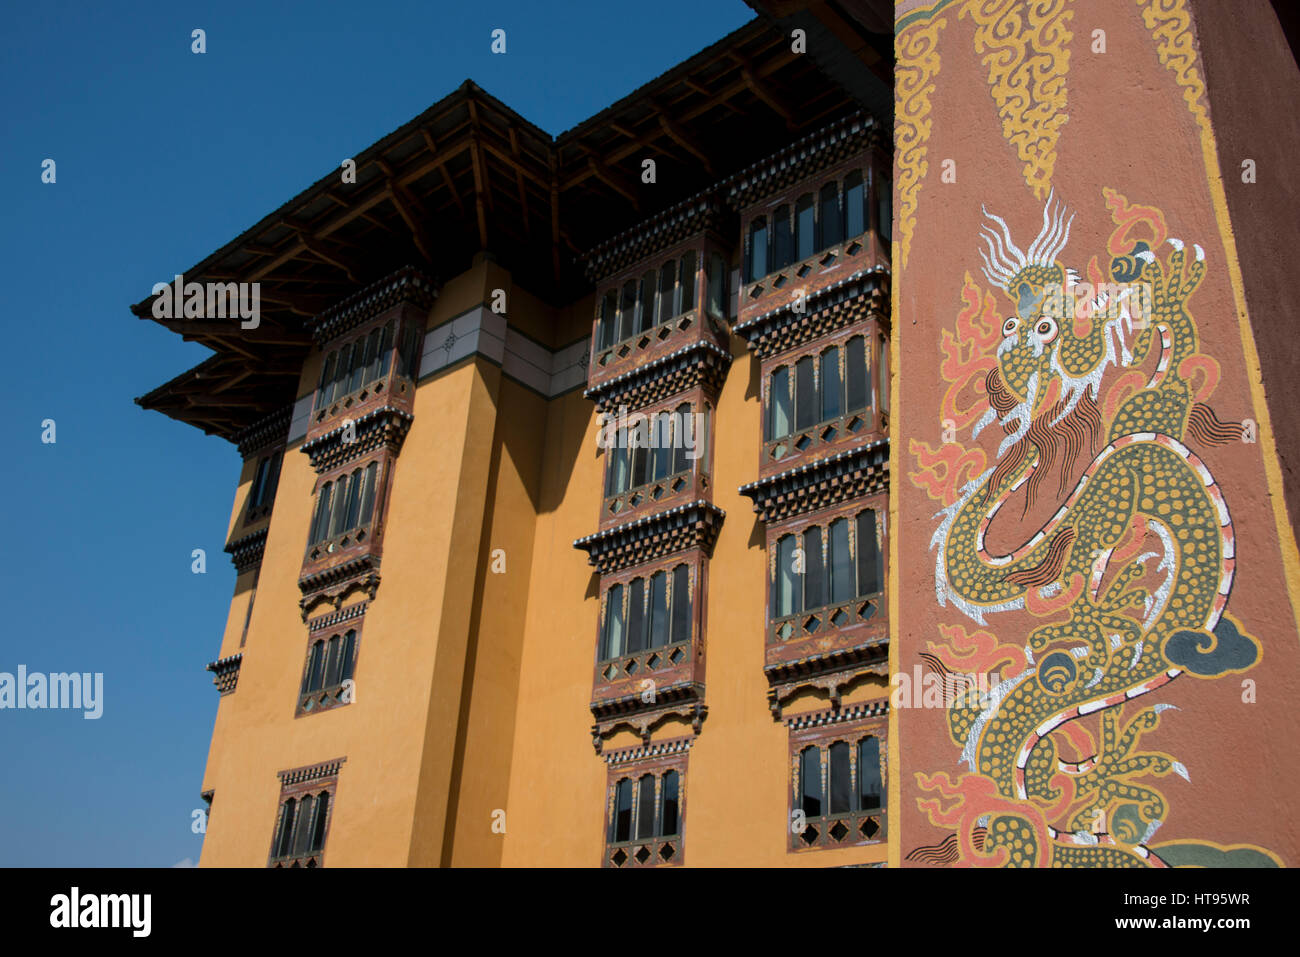 Bhutan, Thimphu, capital of Bhutan. Five-star luxury hotel Taj Tashi Hotel, detail of typical Bhutanese style architecture. - Stock Image